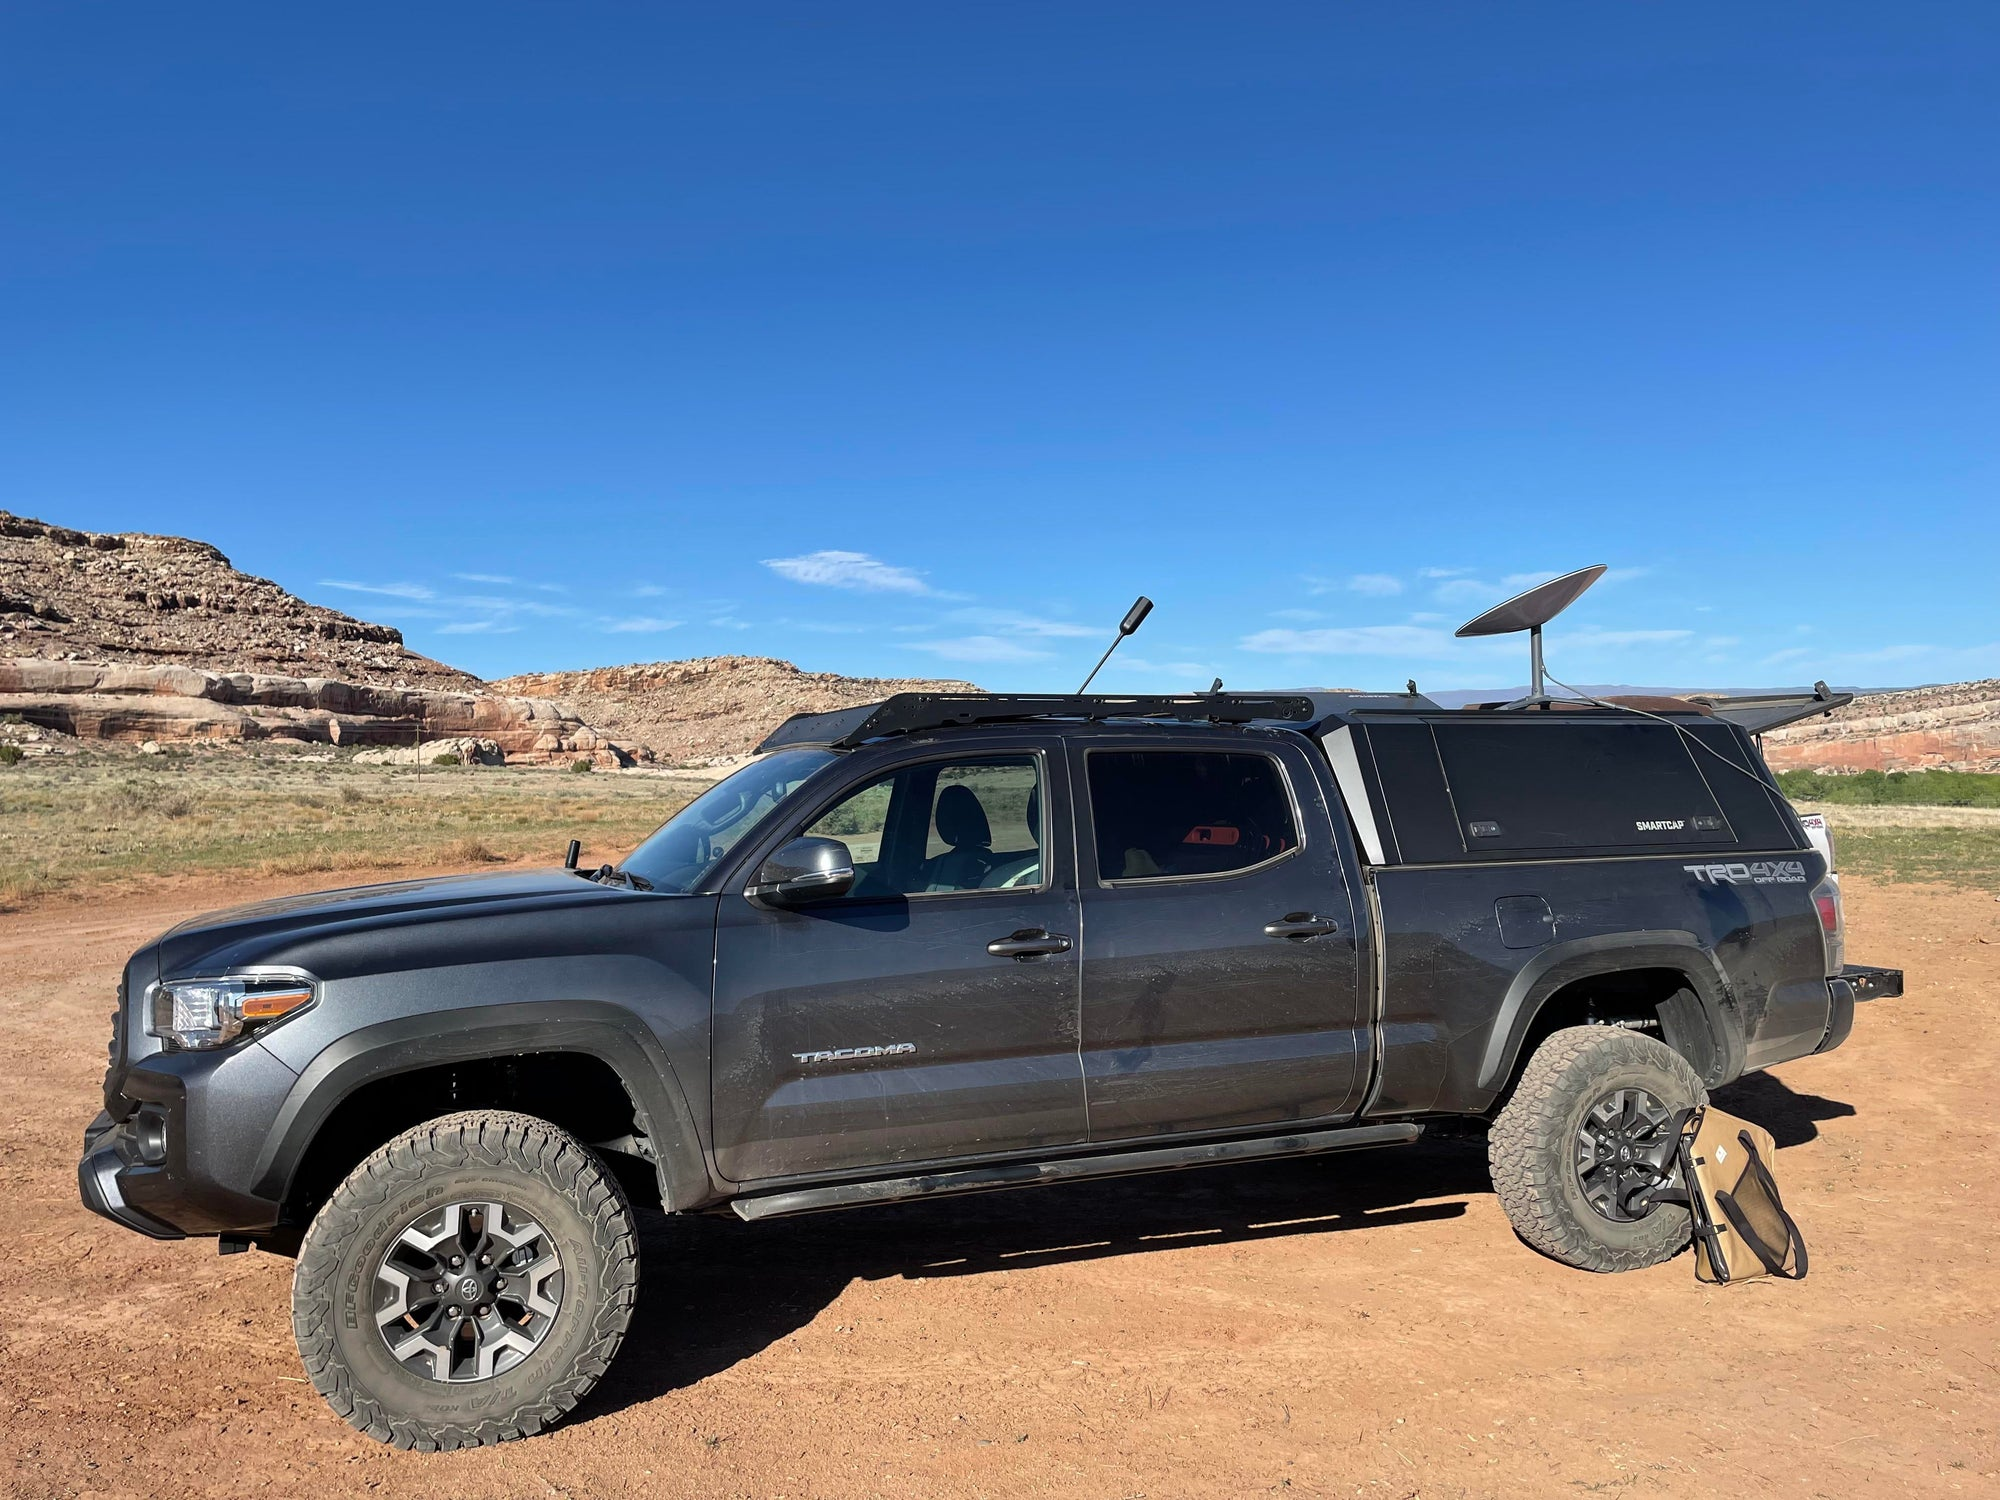 SpaceX Starlink Customer Uses Internet Service Aboard SUV While Camping In Utah